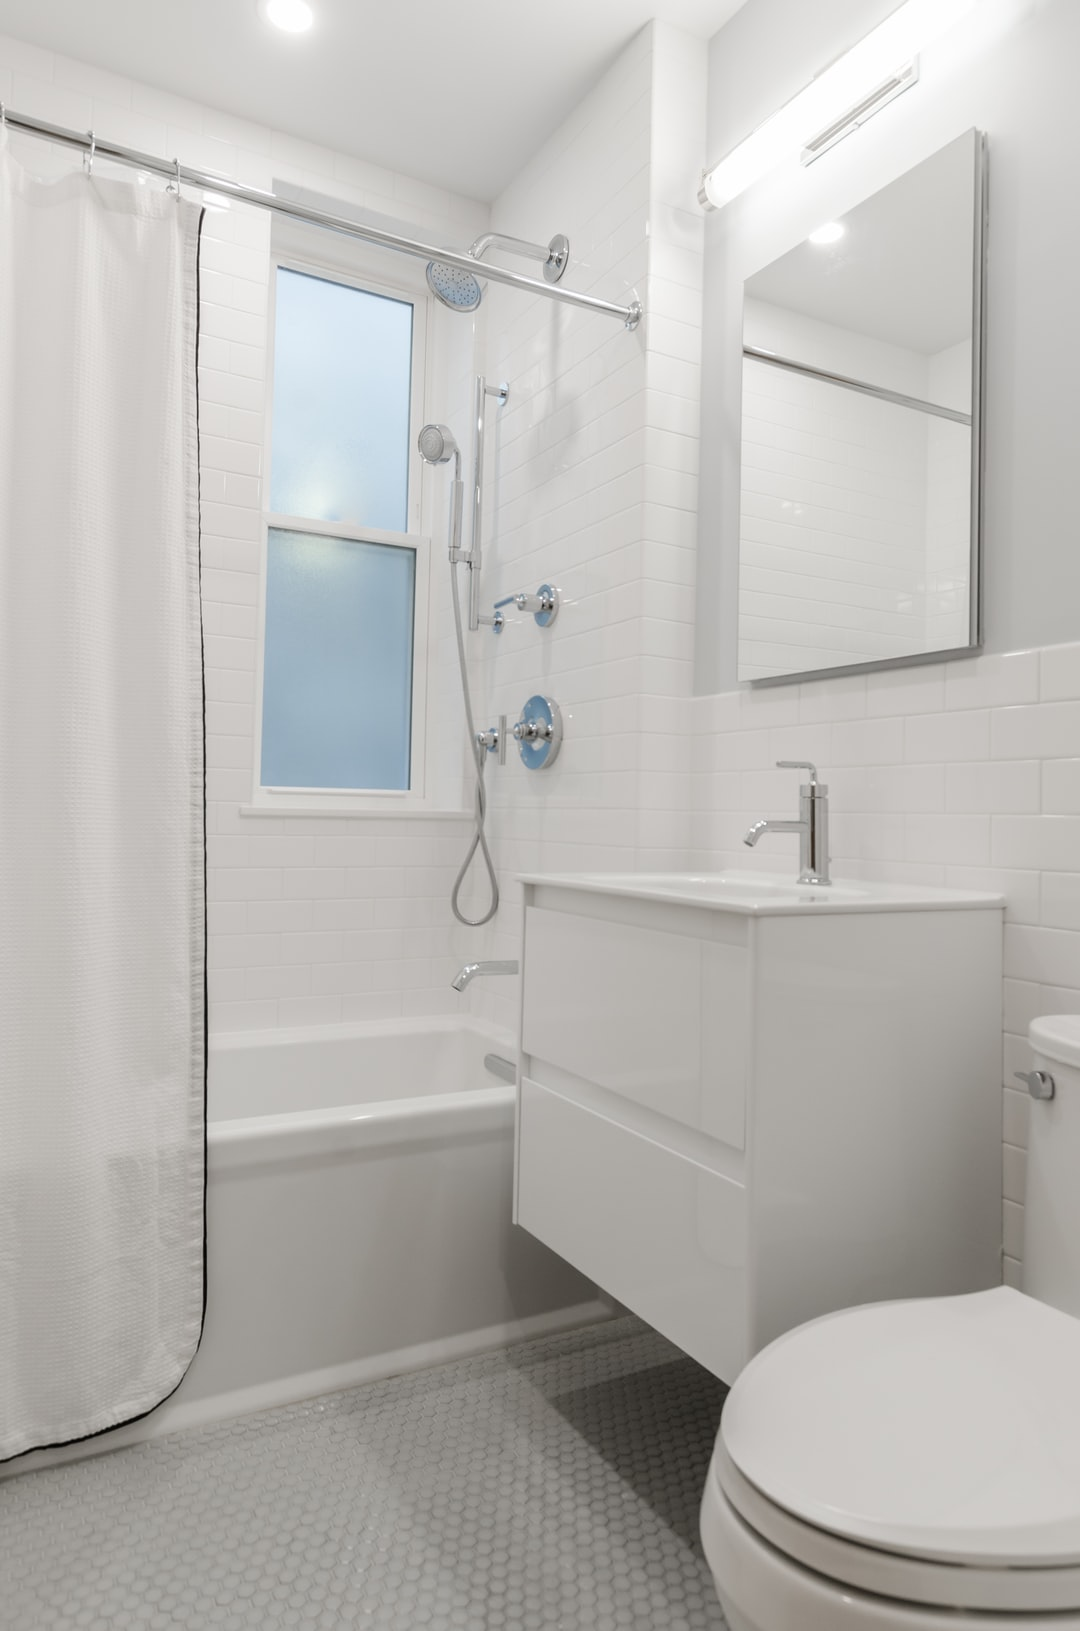 The 5 Top Tips on Choosing the Best Shower Installation Company